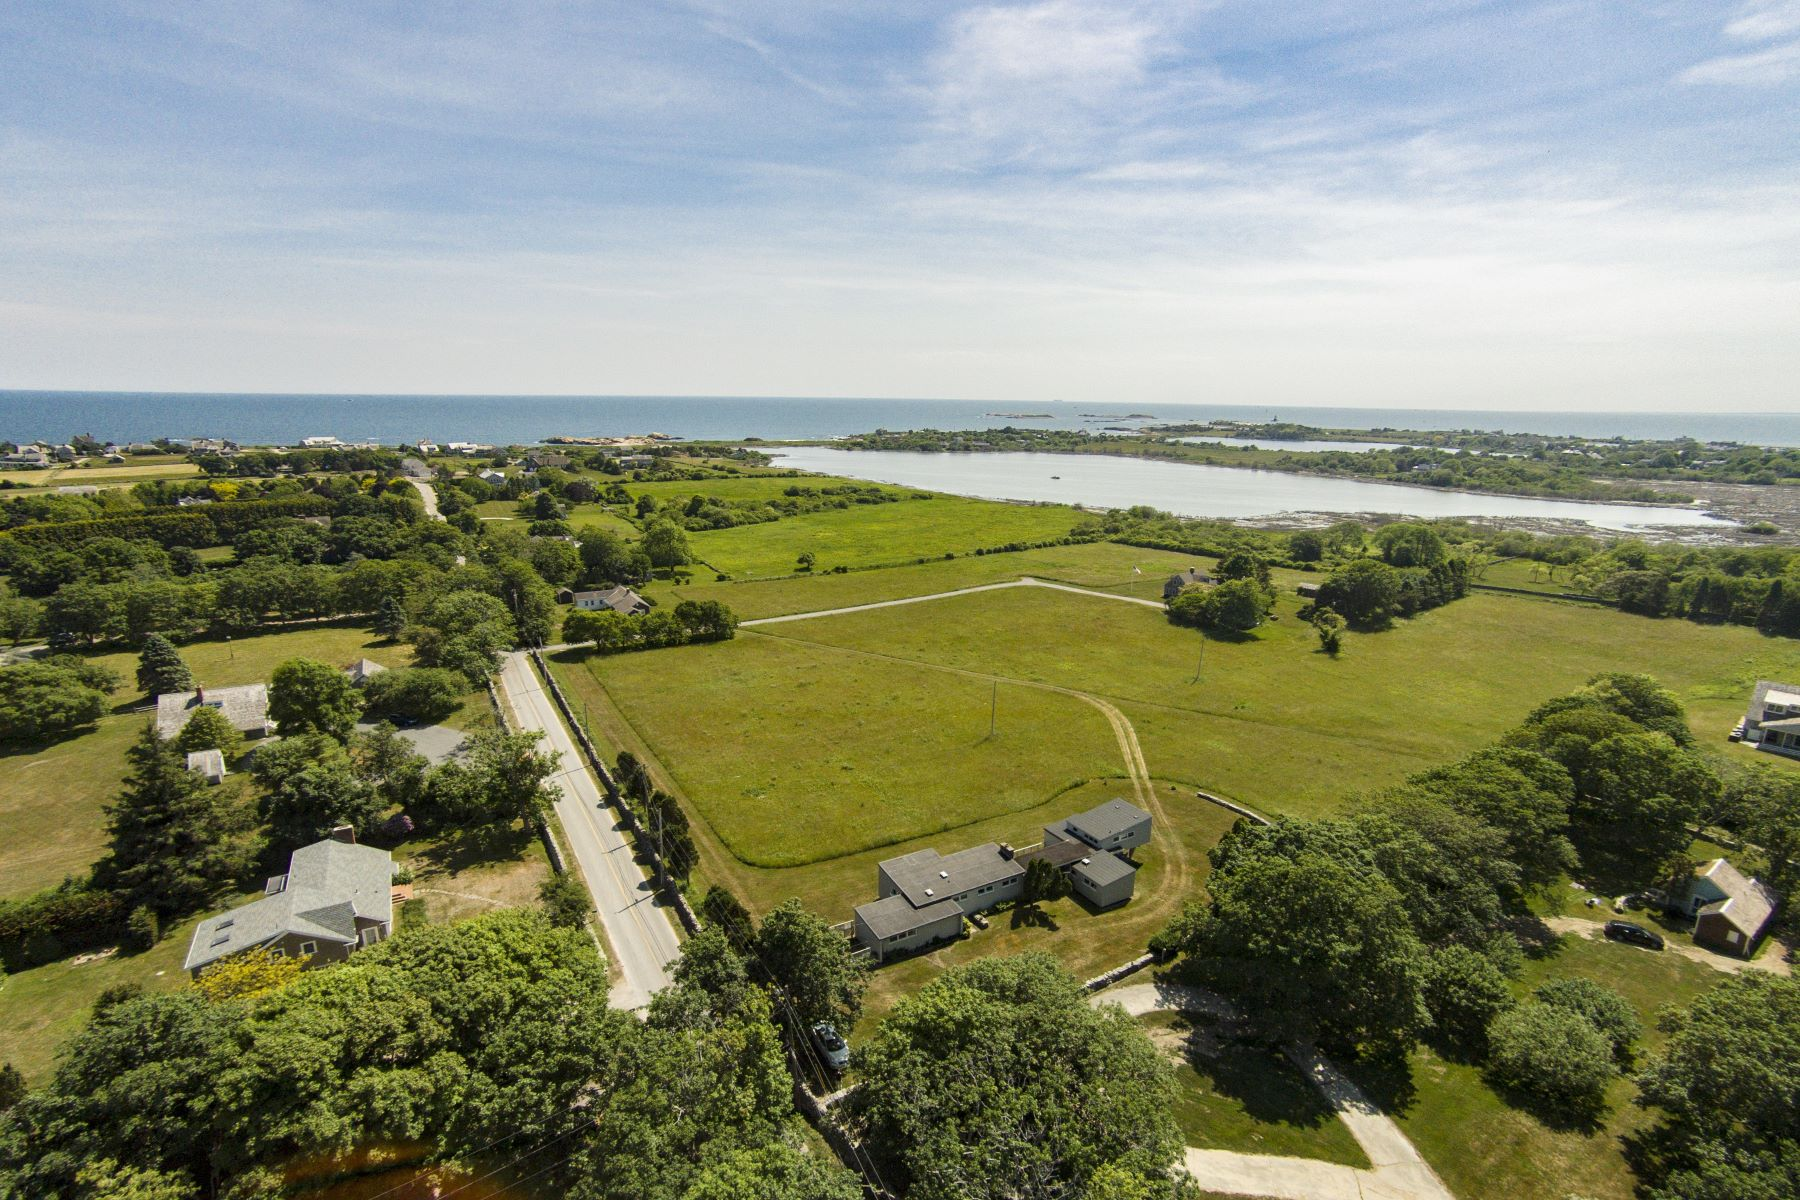 Land for Sale at 67 Warren's Point Rd, Little Compton, RI 67 Warren's Point Rd Little Compton, Rhode Island 02837 United States